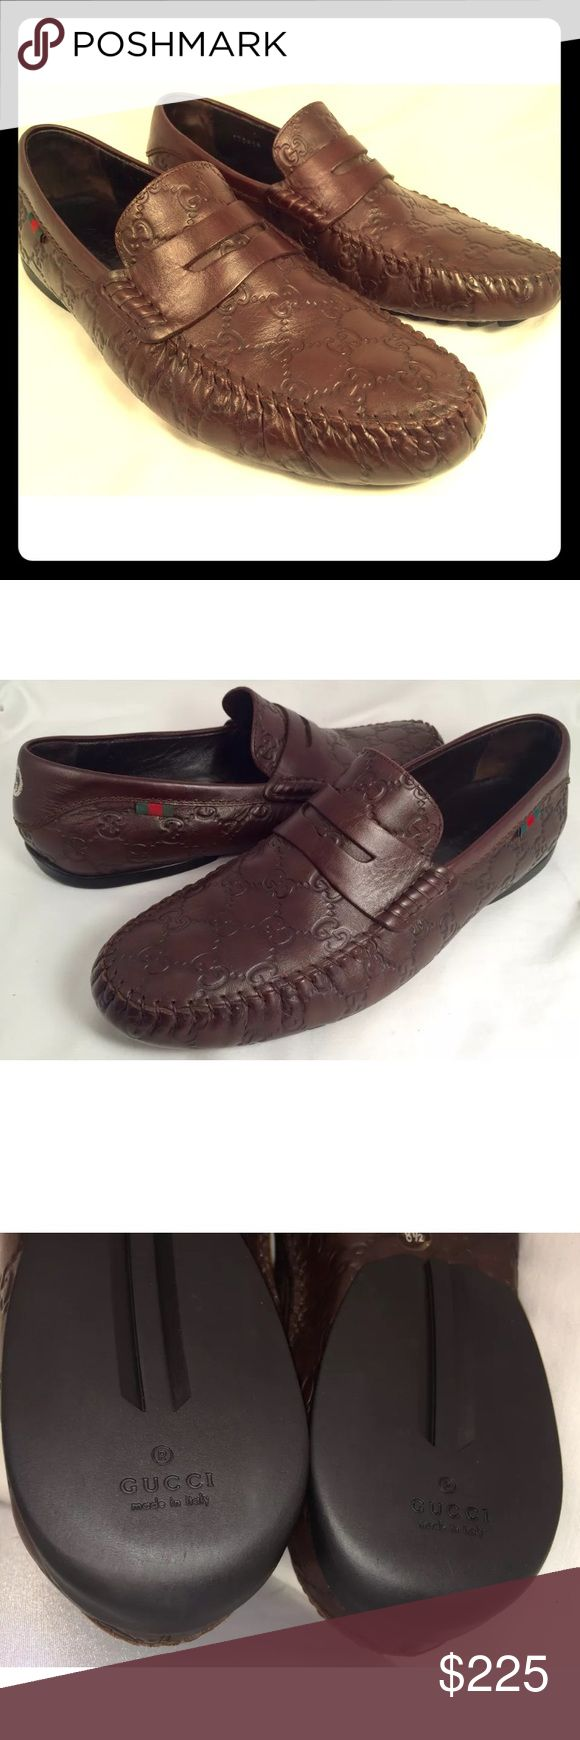 Authentic Gucci leather Guccisma driving loafers Authentic Gucci size European 8.5 us 9.5 brown guccisma genuine loafers, worn only ones in excellent condition with only light wear in the front bottom Gucci Shoes Loafers & Slip-Ons